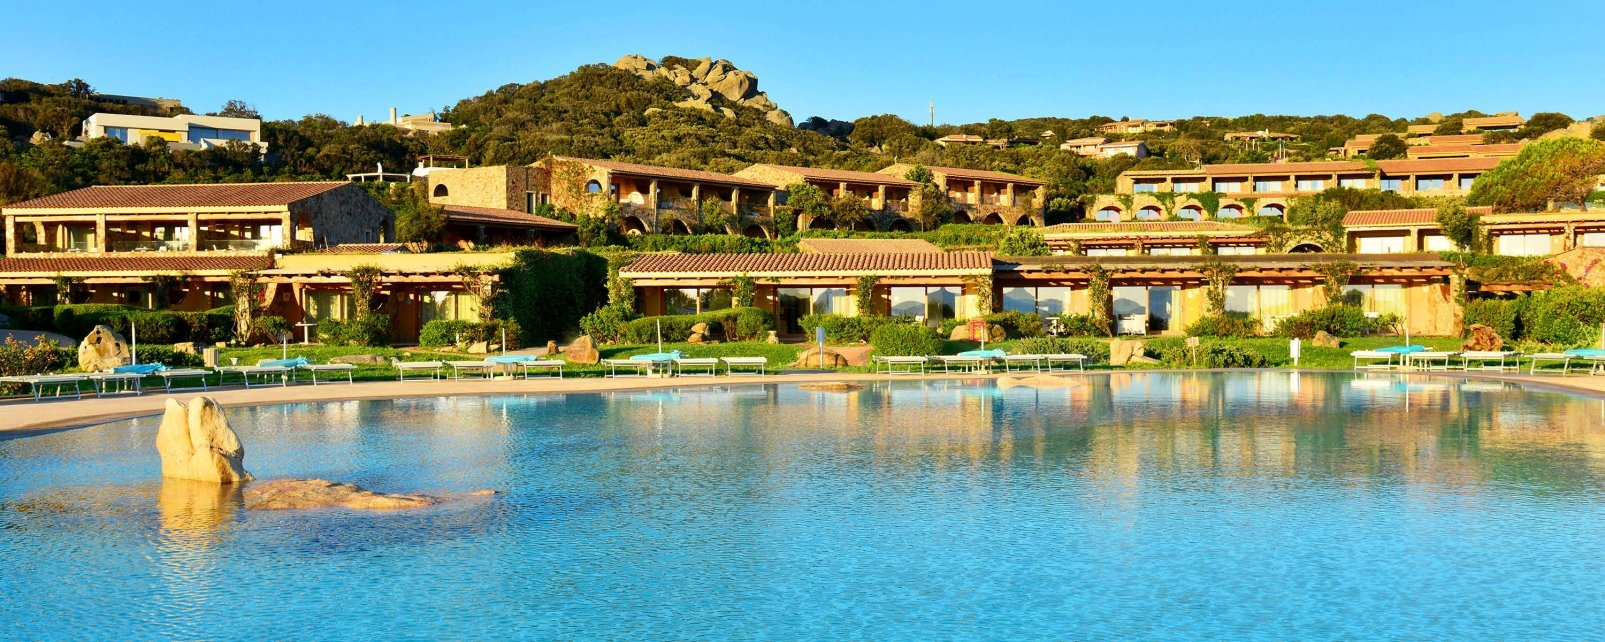 Hotel Resort Valle dell Erica Thalasso SPA